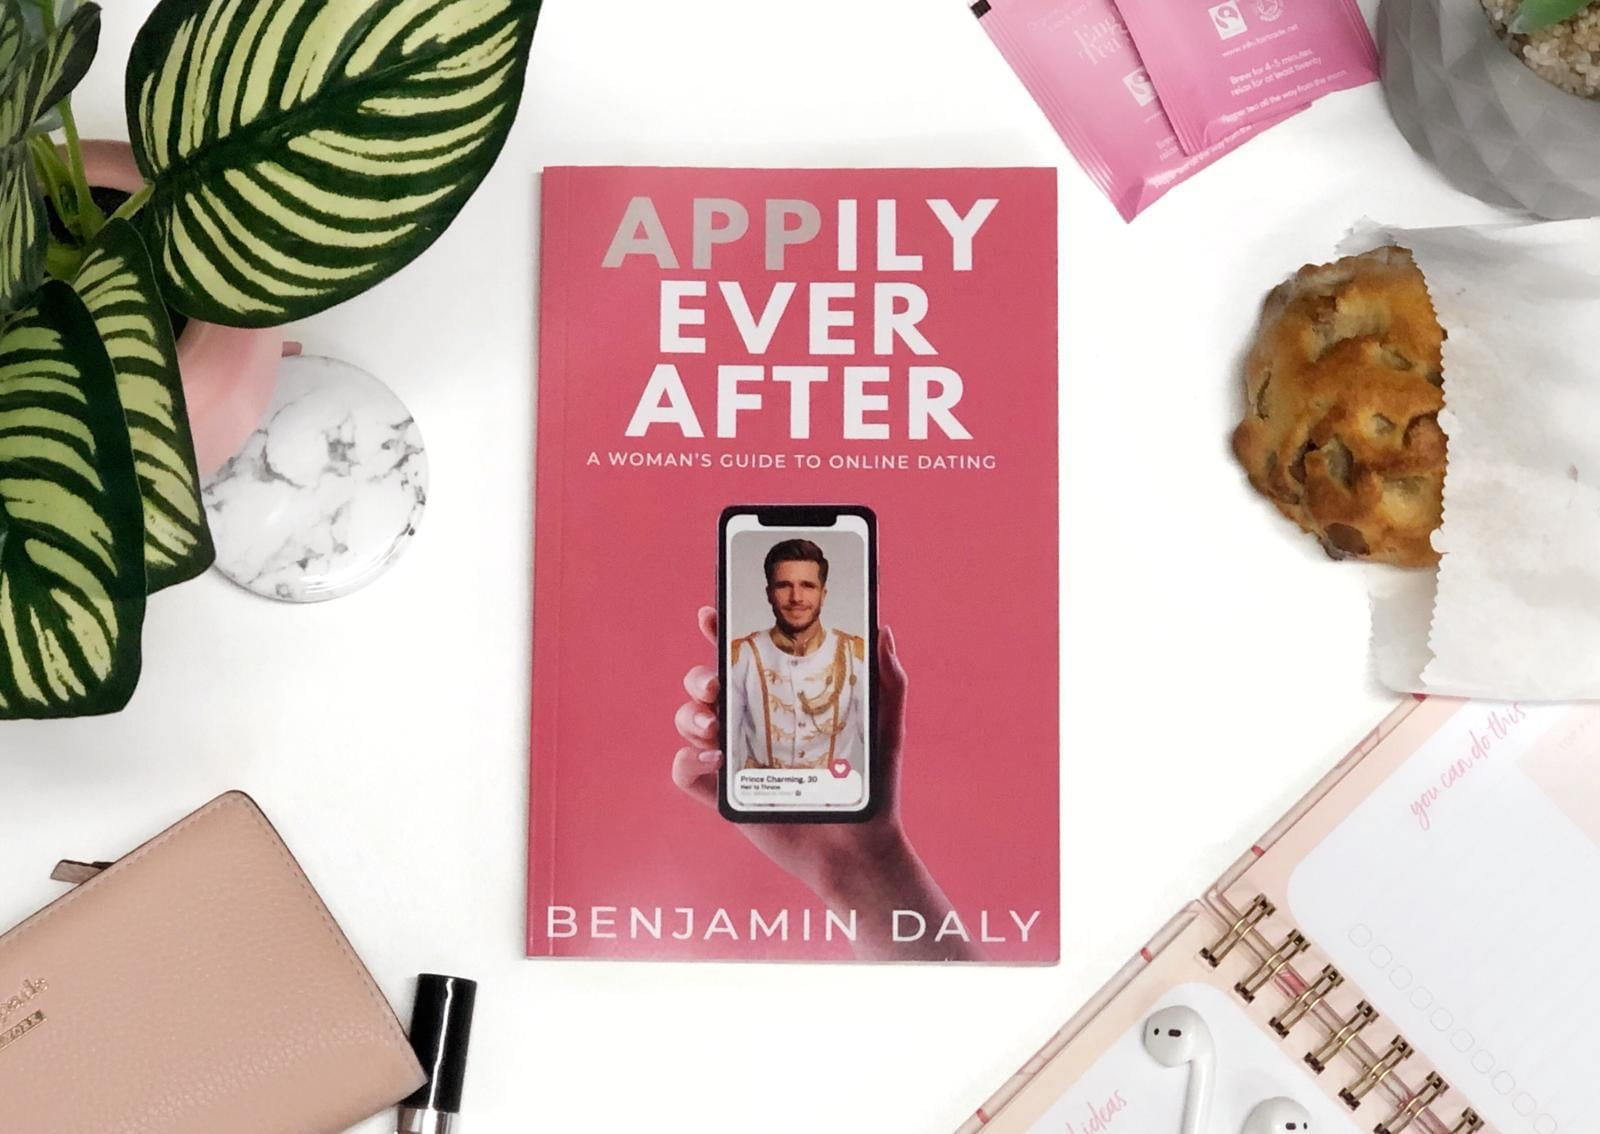 I Tried This Dating Hack From the Appily Ever After Book, and It Worked Immediately